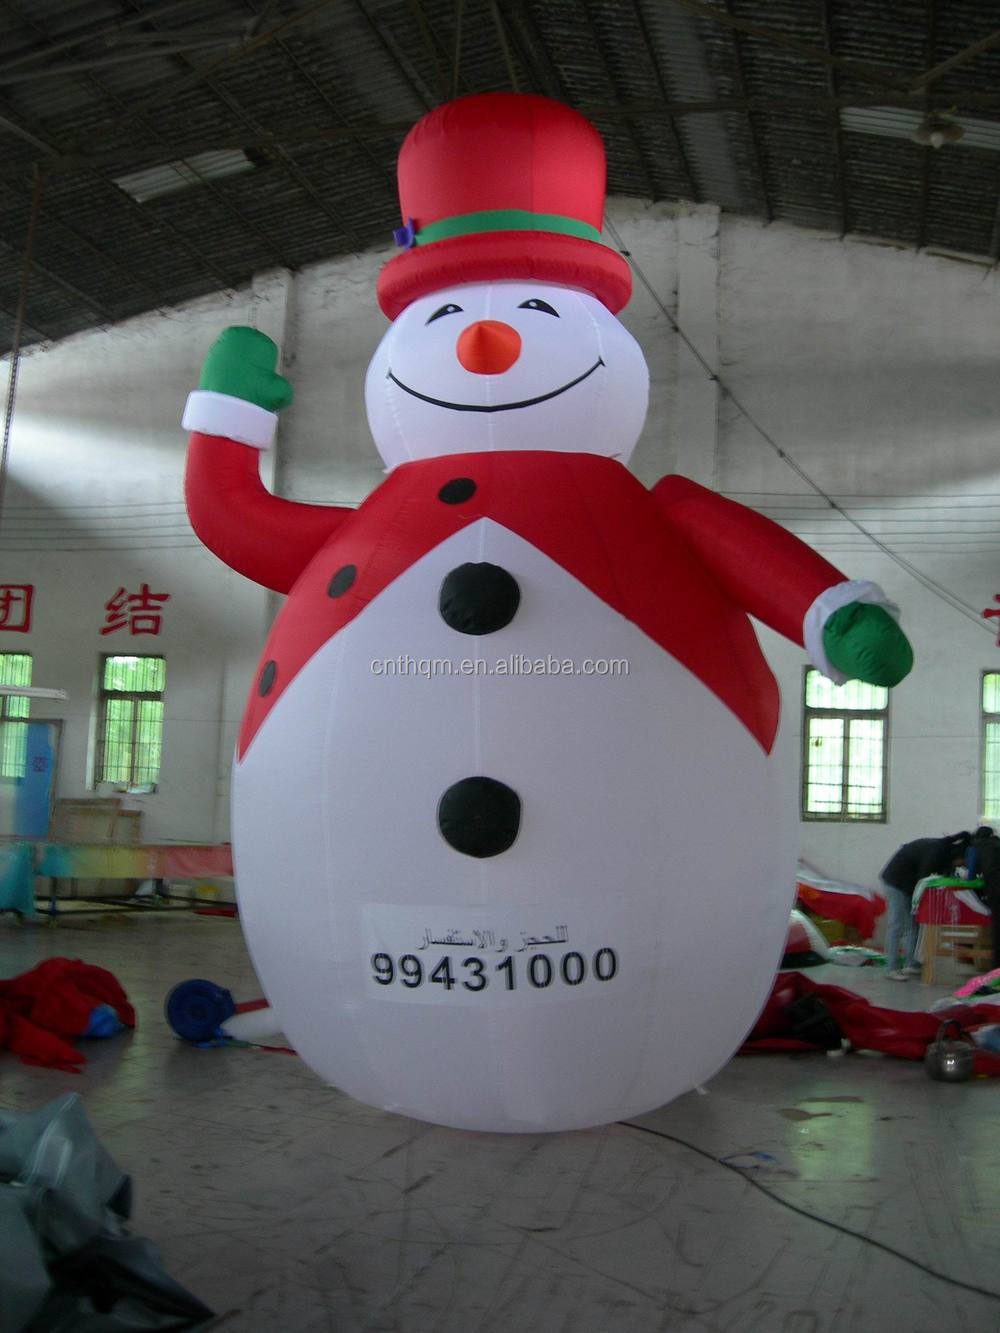 Giant inflatable snowman inflatable father christmas snowman for sale